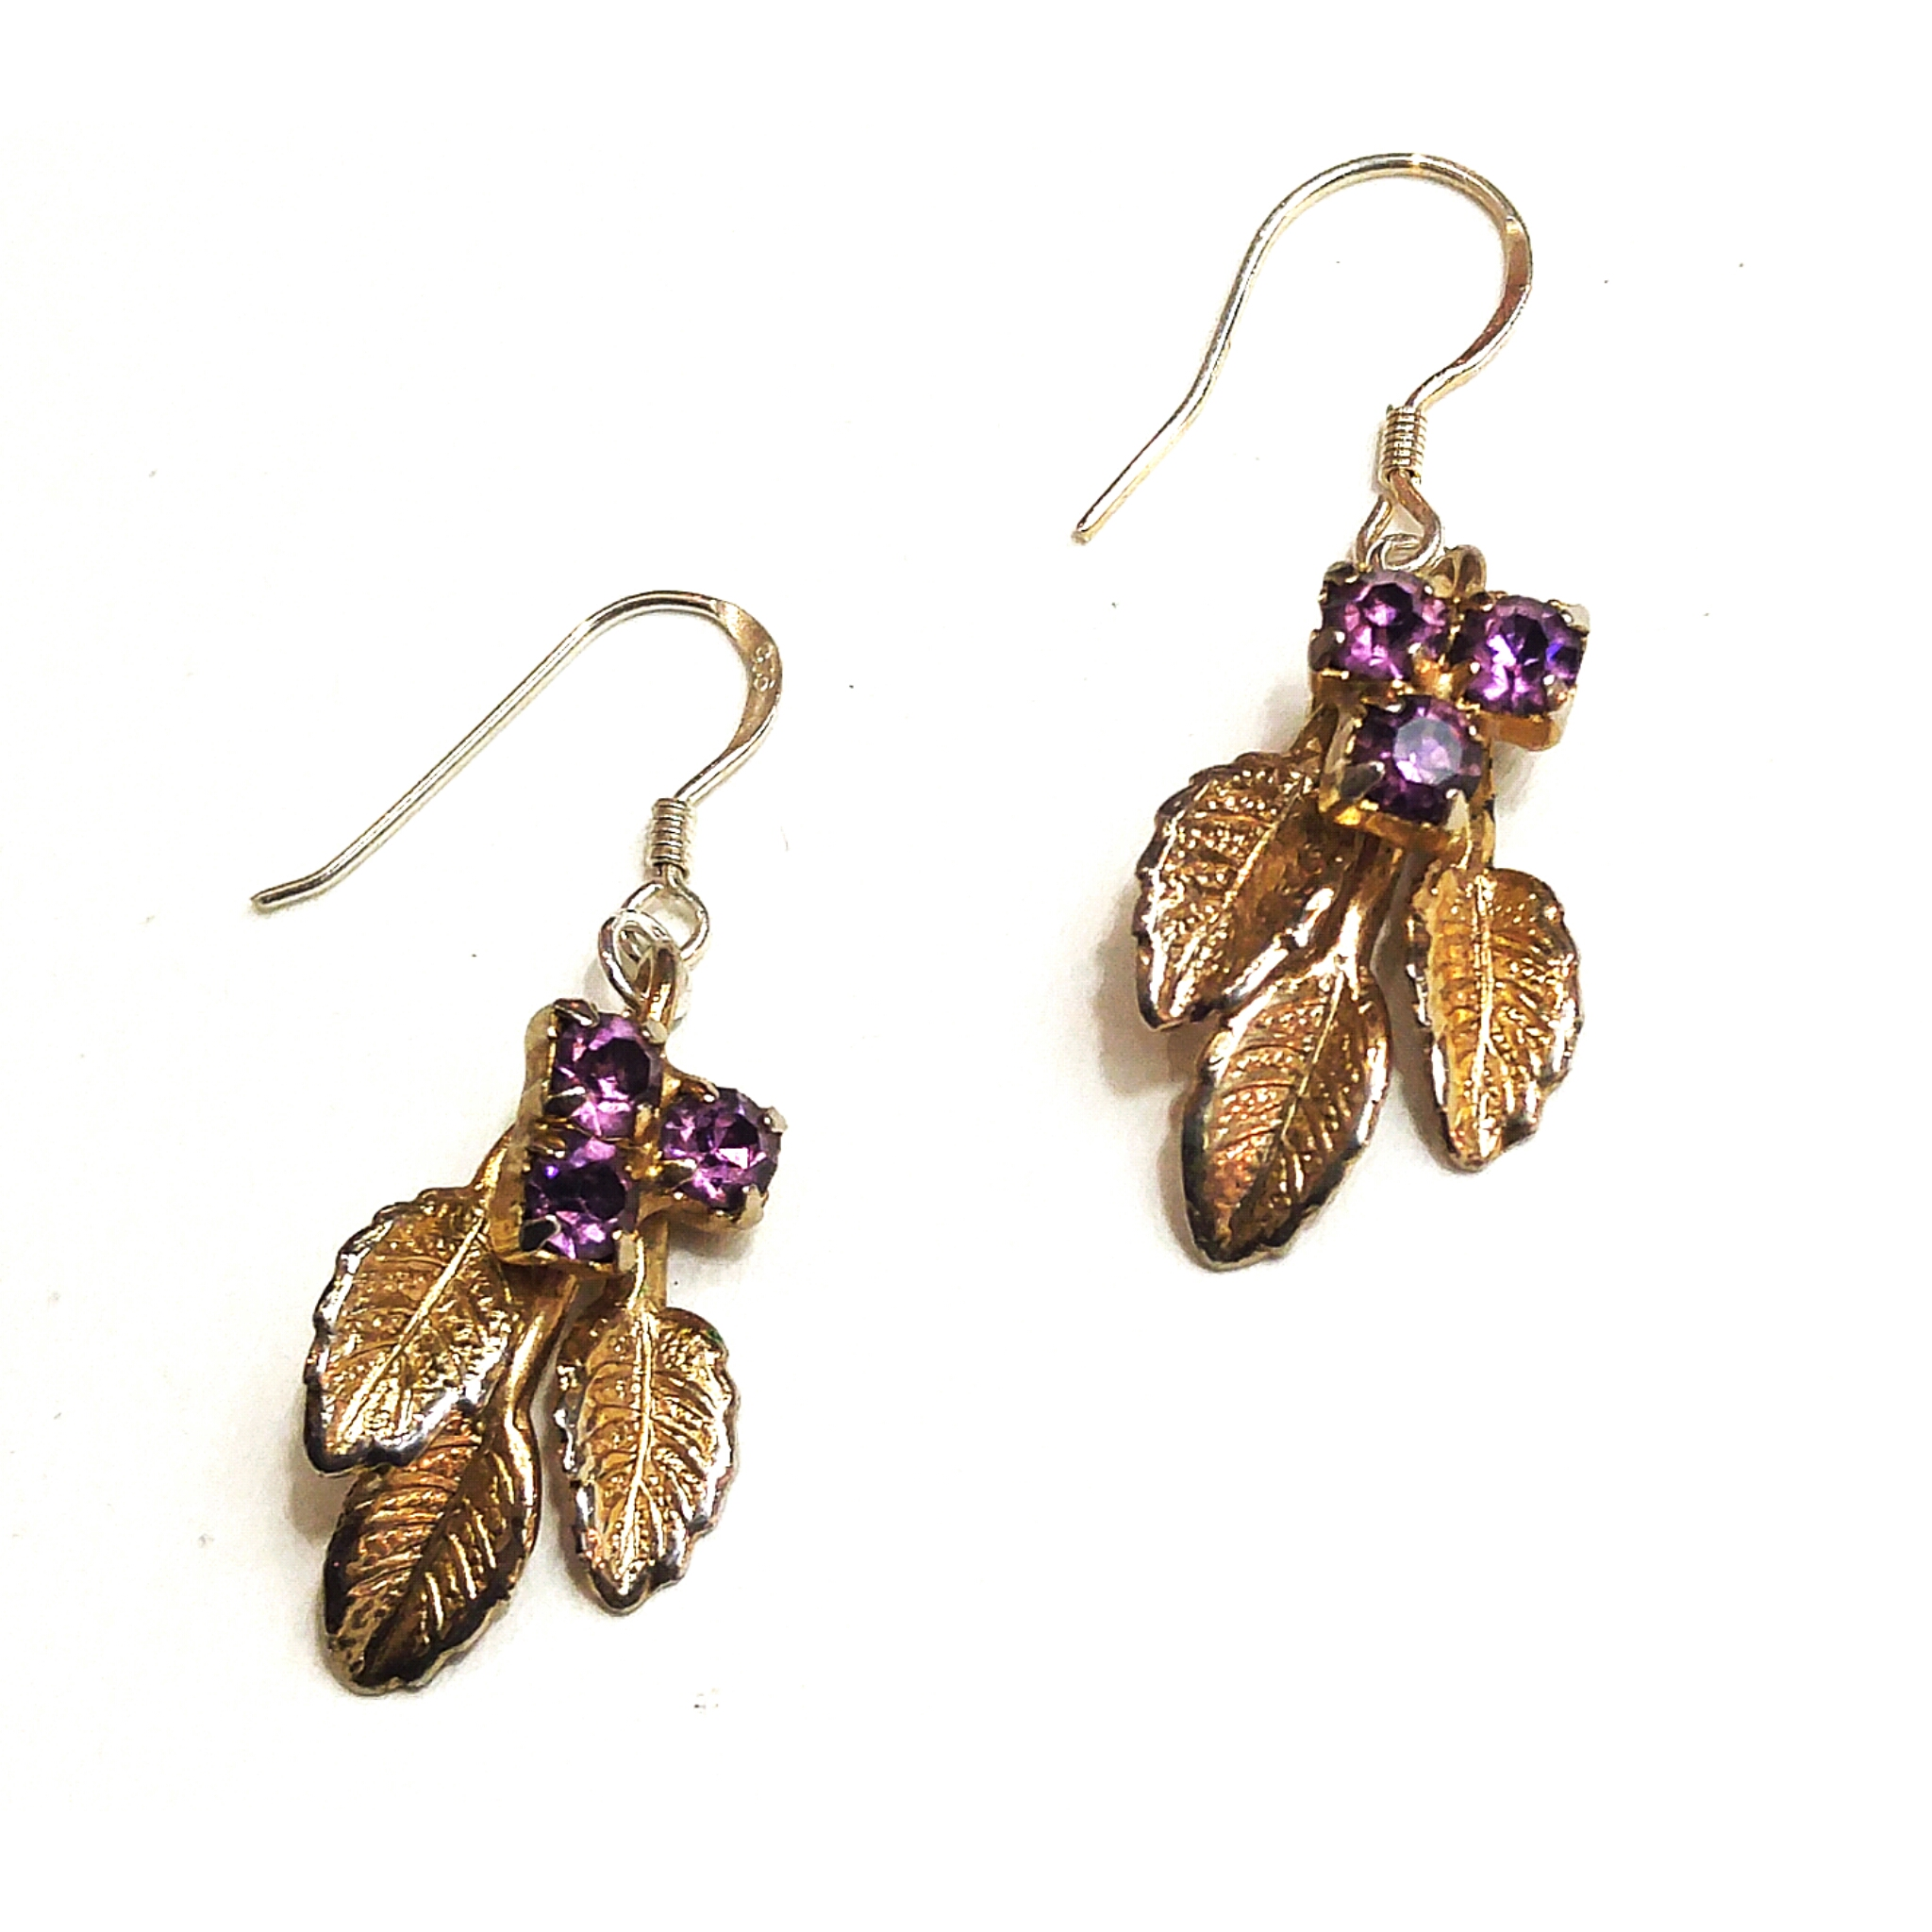 vintage screwbacks updated to sterling silver posts make these earrings one of a kind!